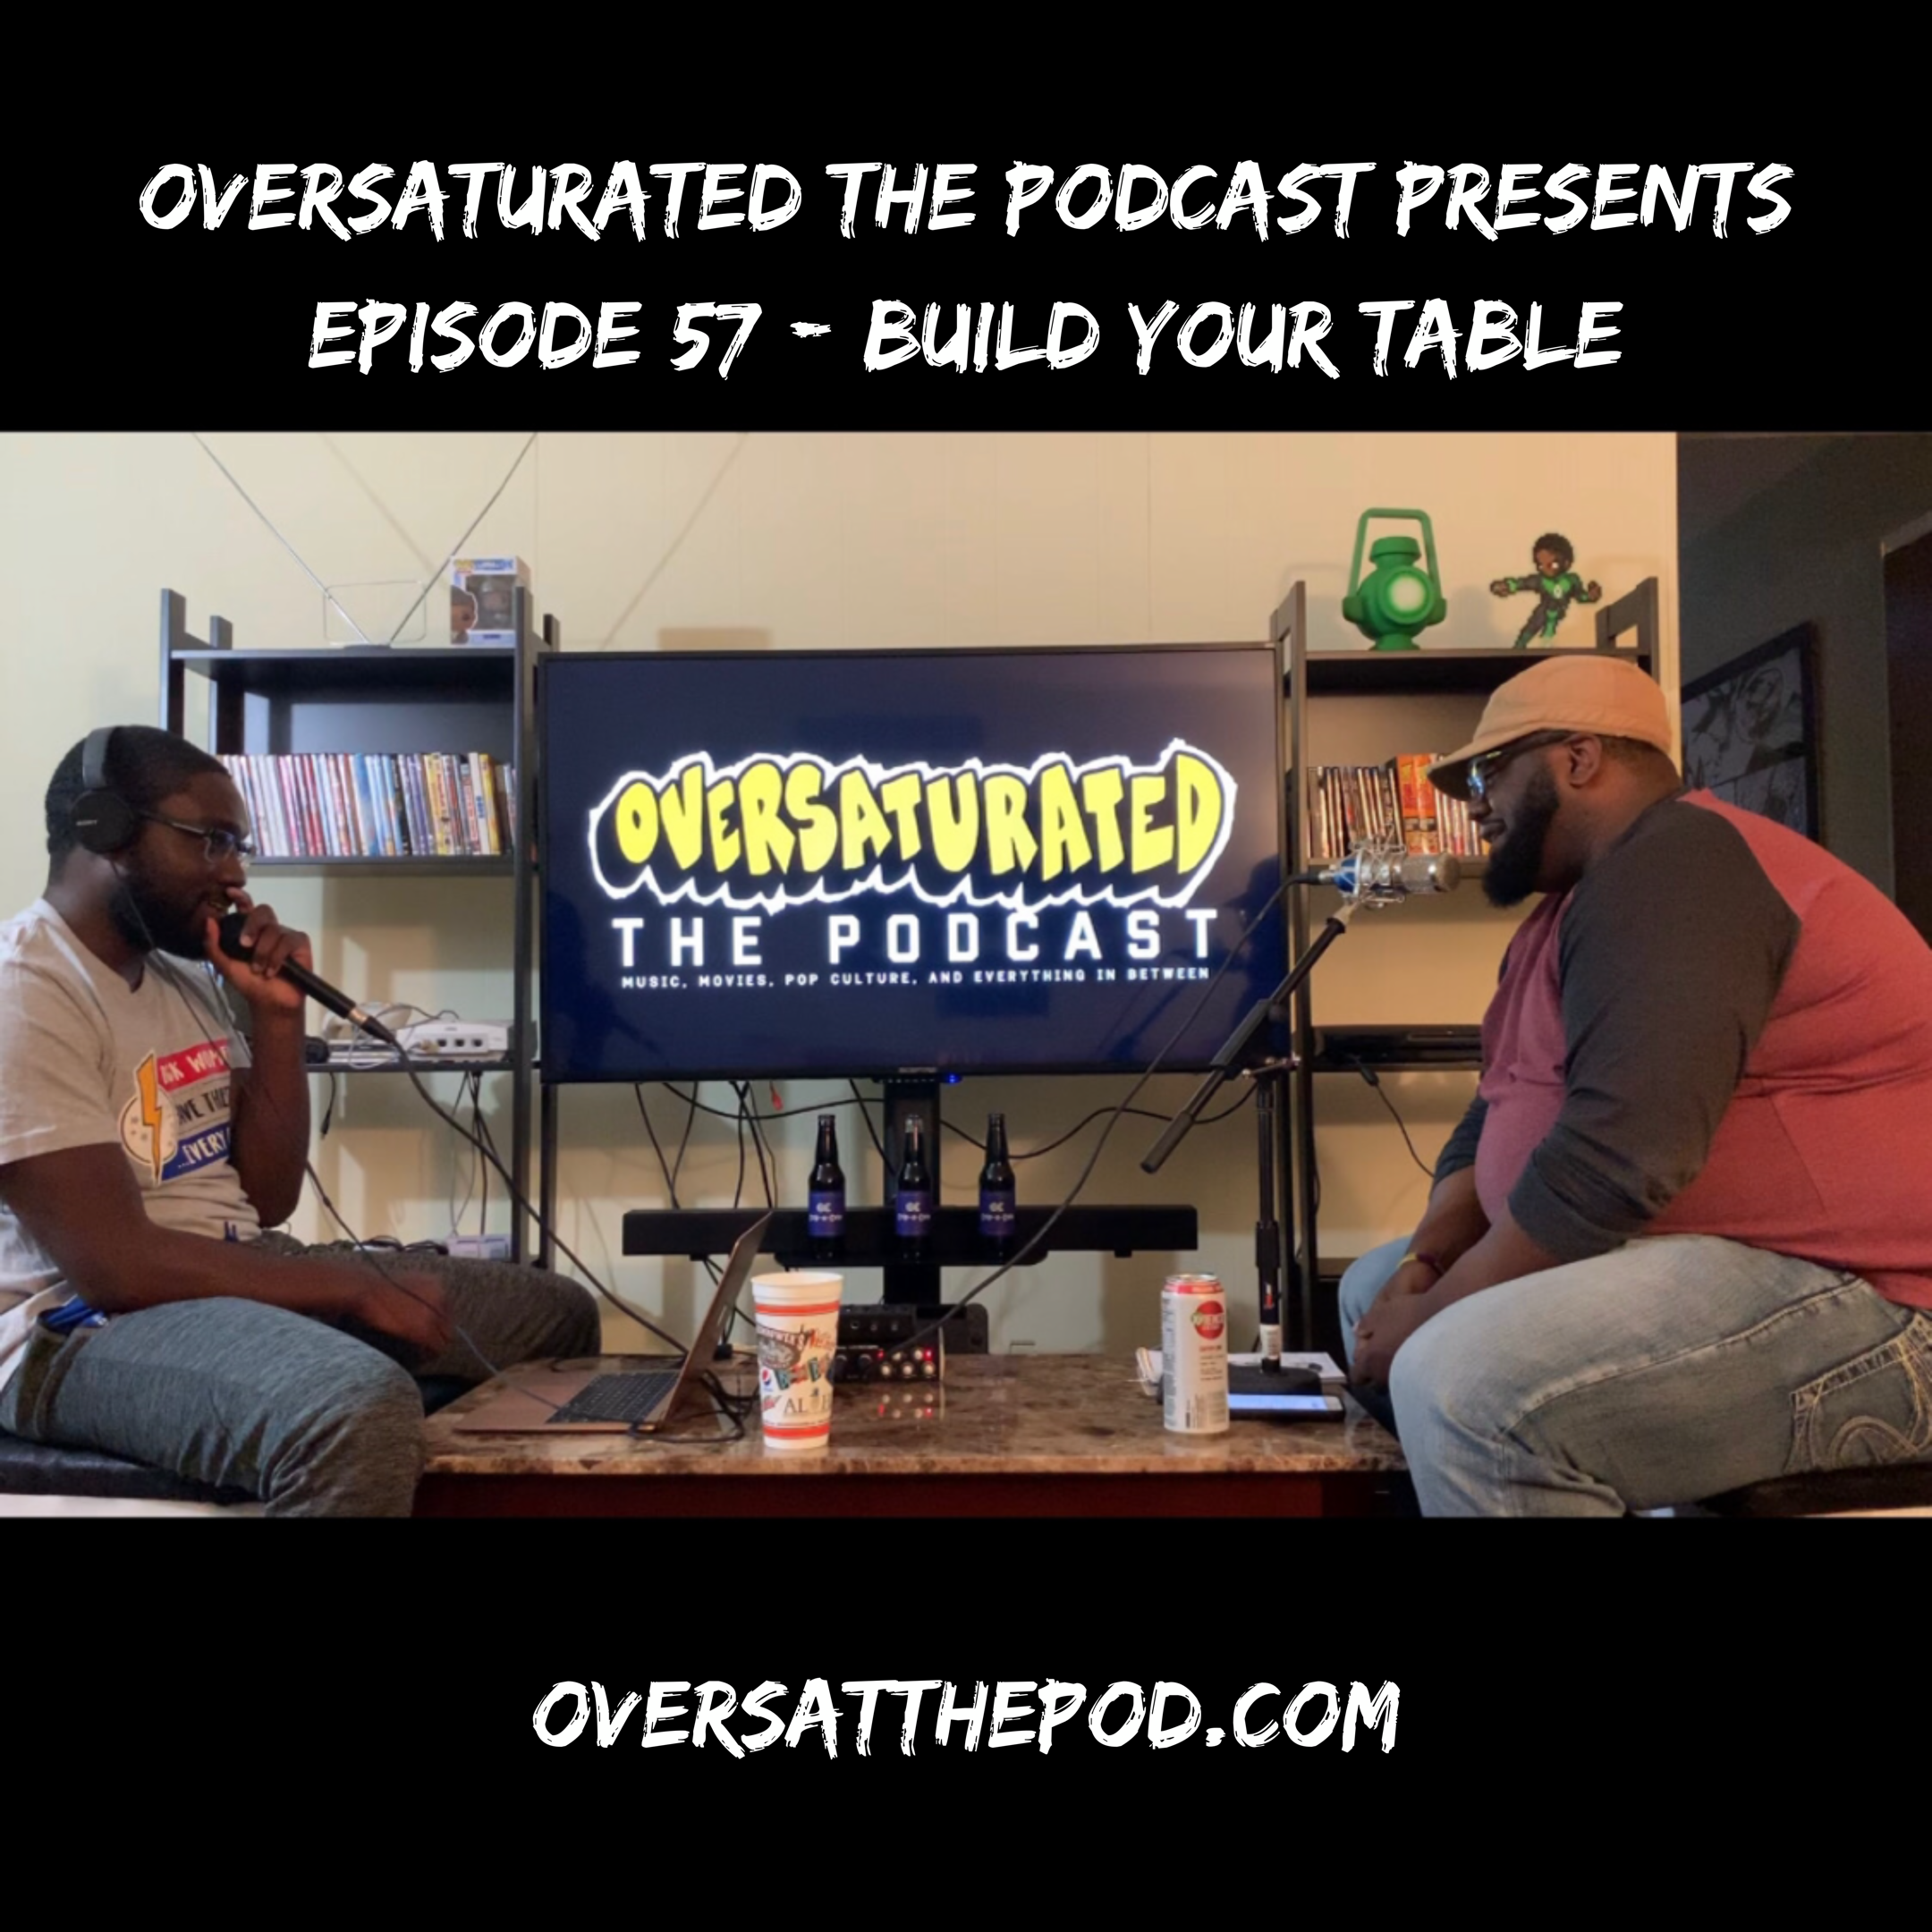 Oversaturated The Podcast Presents Episode 57 - Build Your Table.PNG